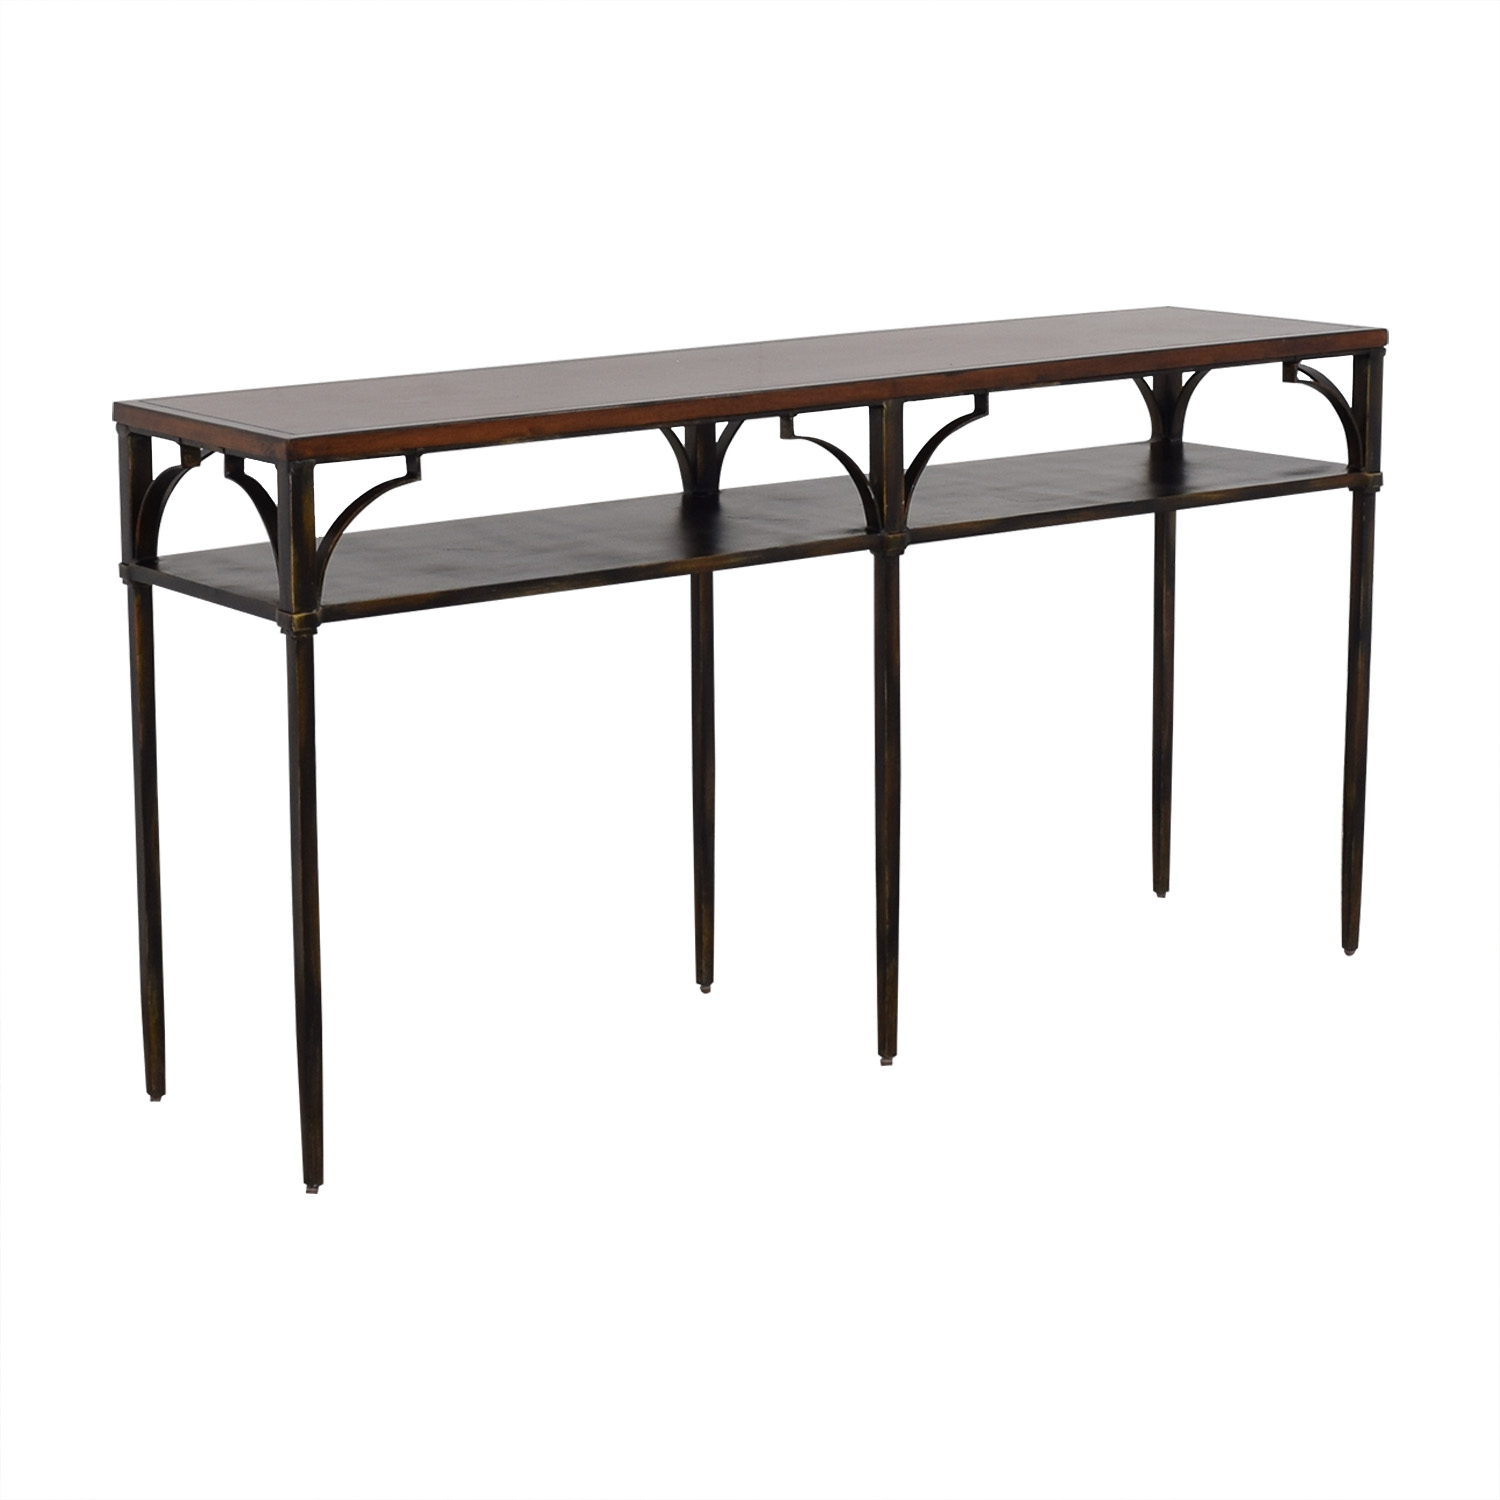 Mitchell Gold + Bob Williams Mitchell Gold + Bob Williams Console Table coupon